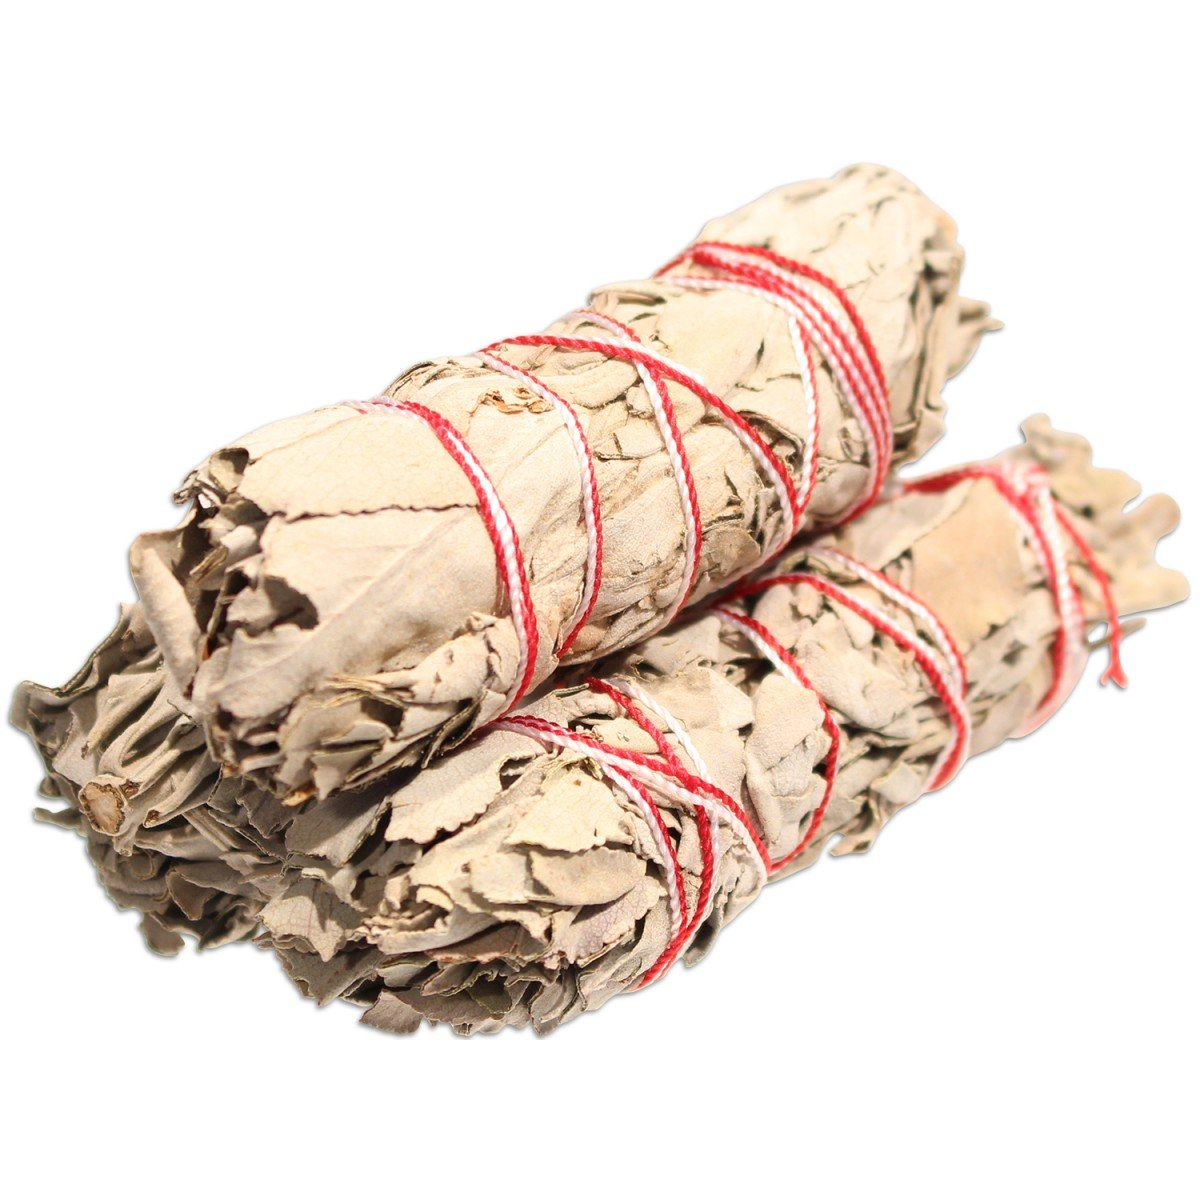 NC Naturals Organic California White Sage Smudge Bundles (Pack of 12) by NC Naturals